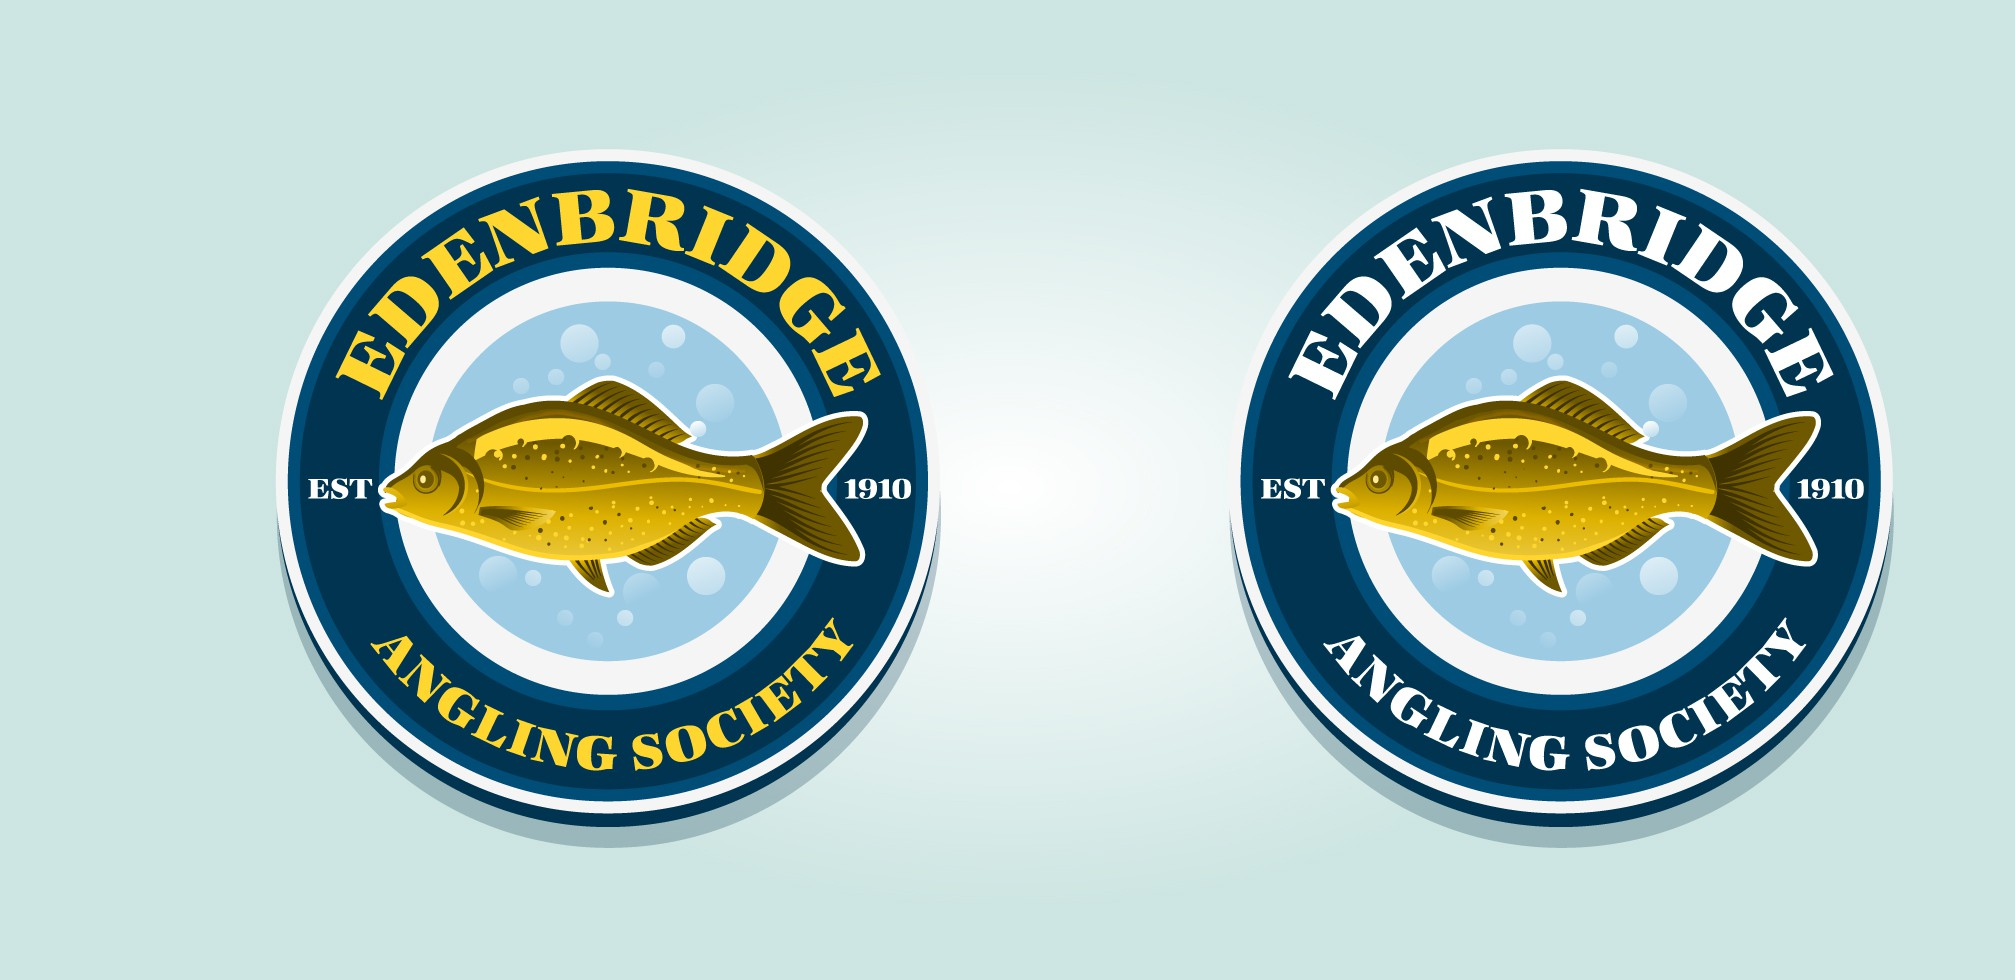 Edenbridge Angling  Society needs a new logo